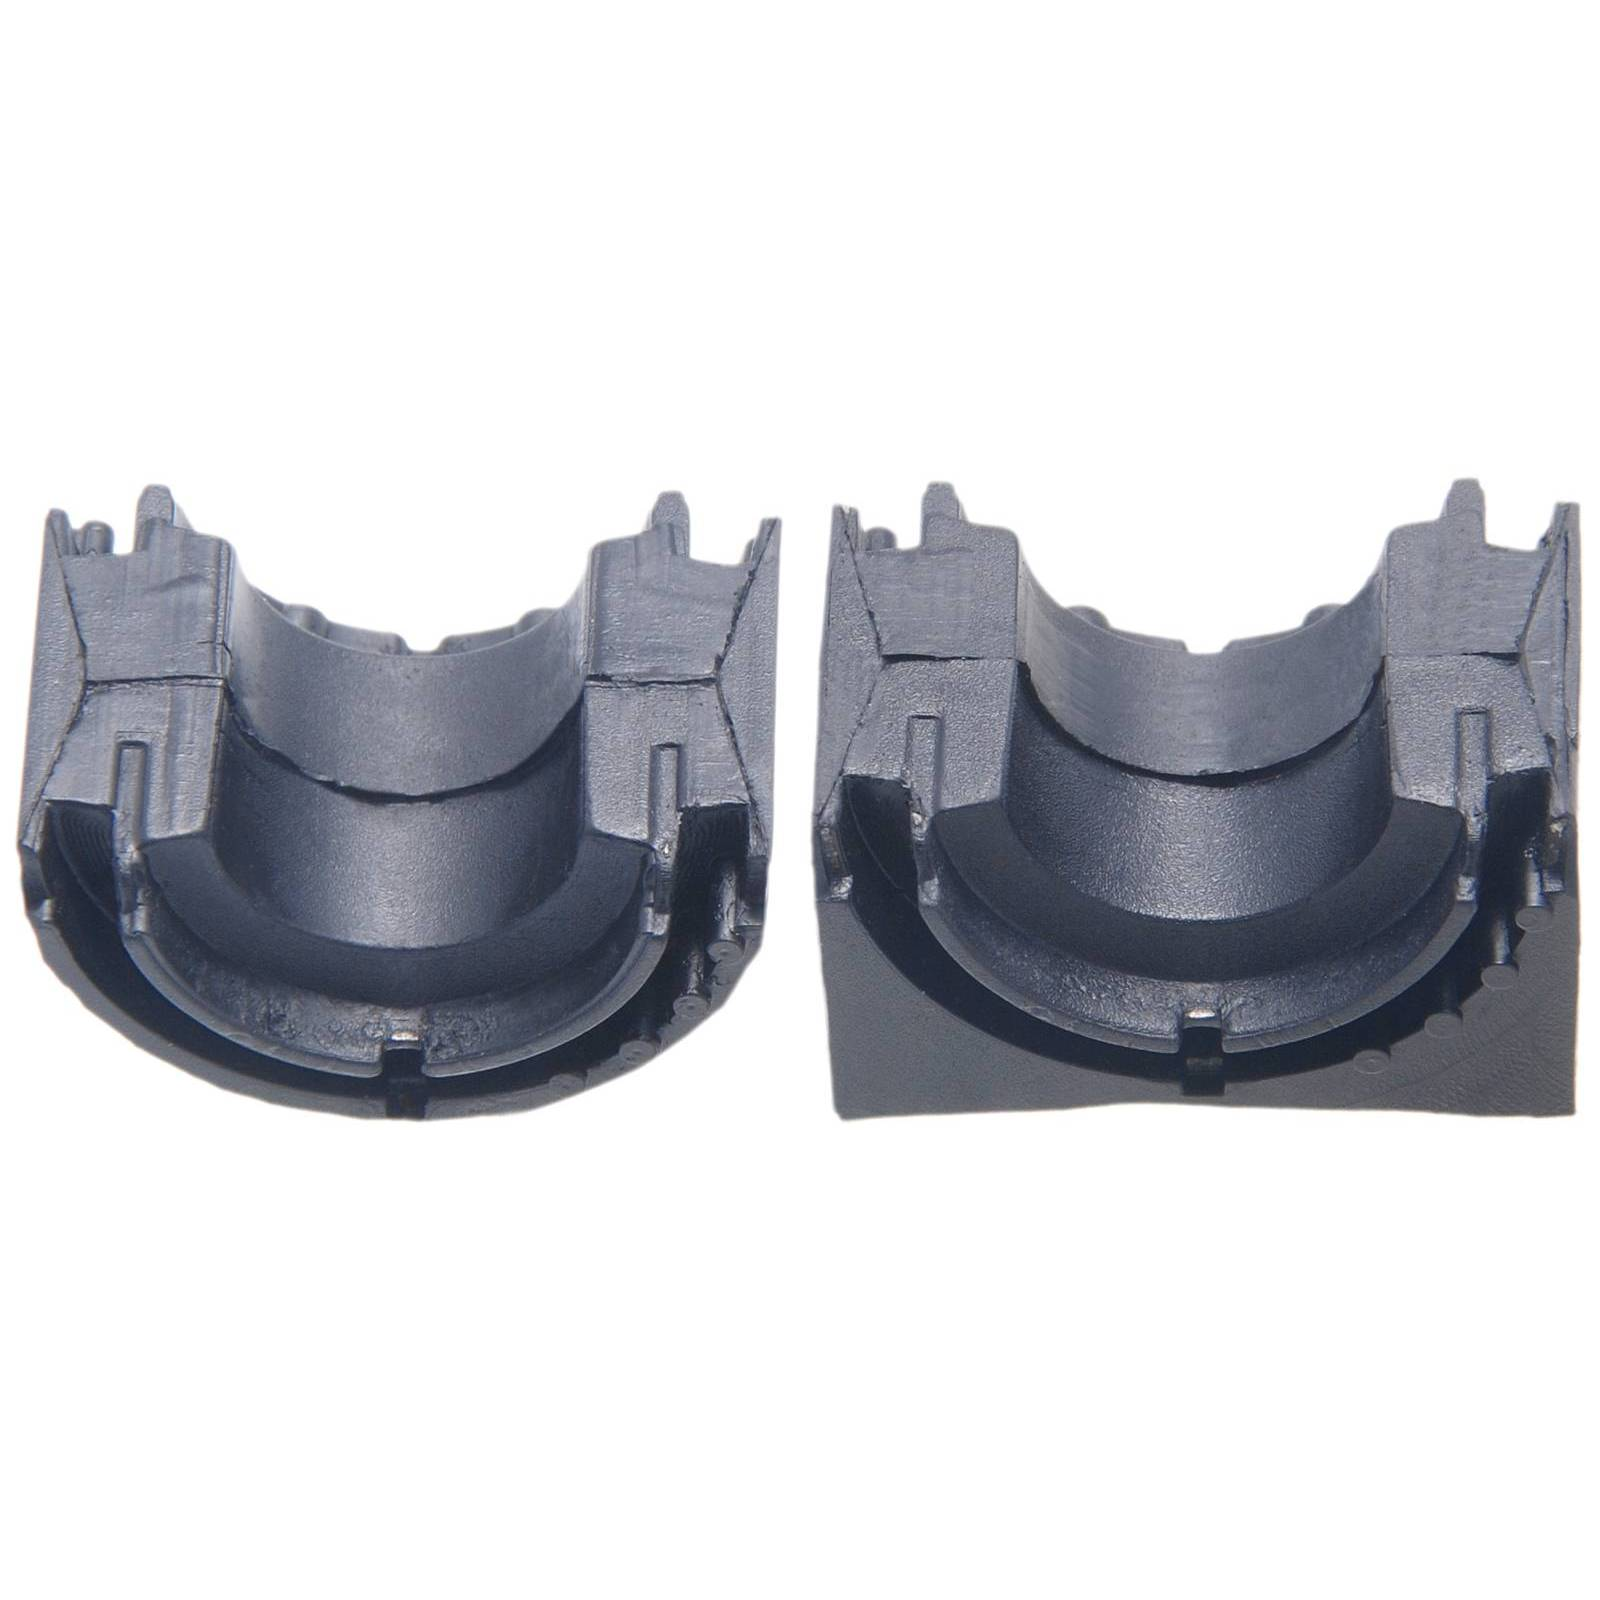 VWSB-B7F STABILISER MOUNTING FEBEST FRONT AXLE BOTH SIDES